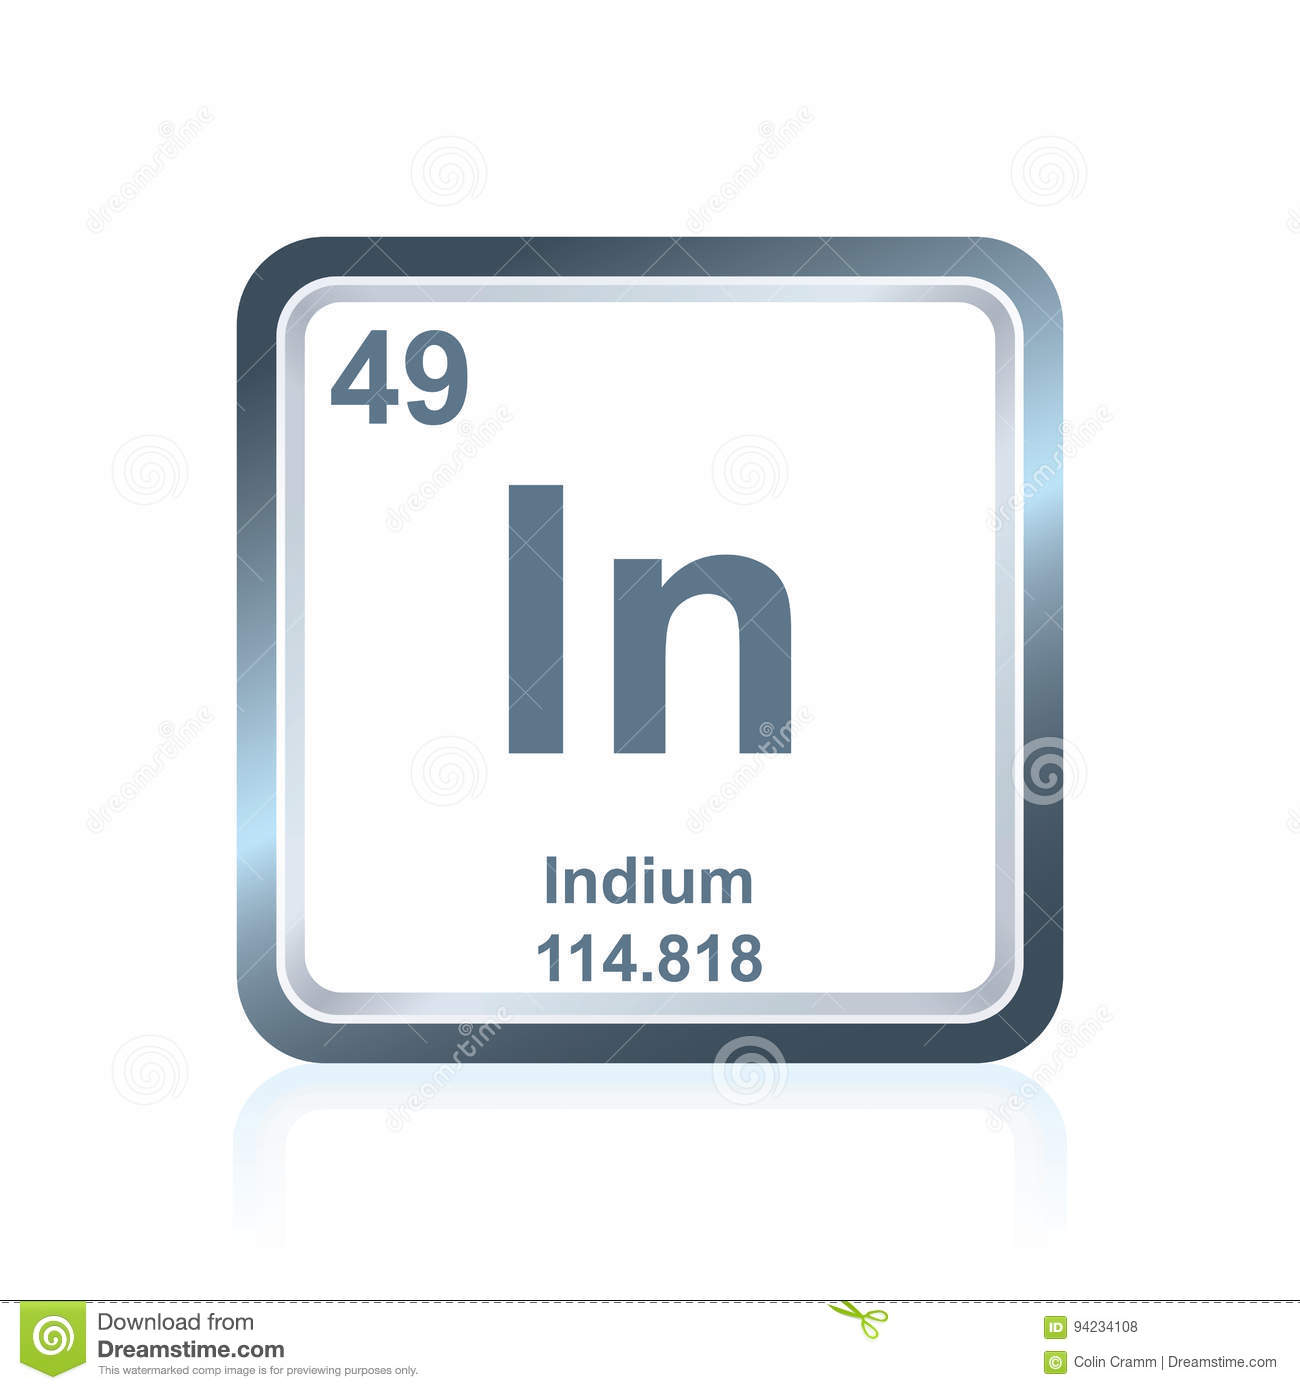 Chemical element indium from the periodic table stock illustration chemical element indium from the periodic table biocorpaavc Images